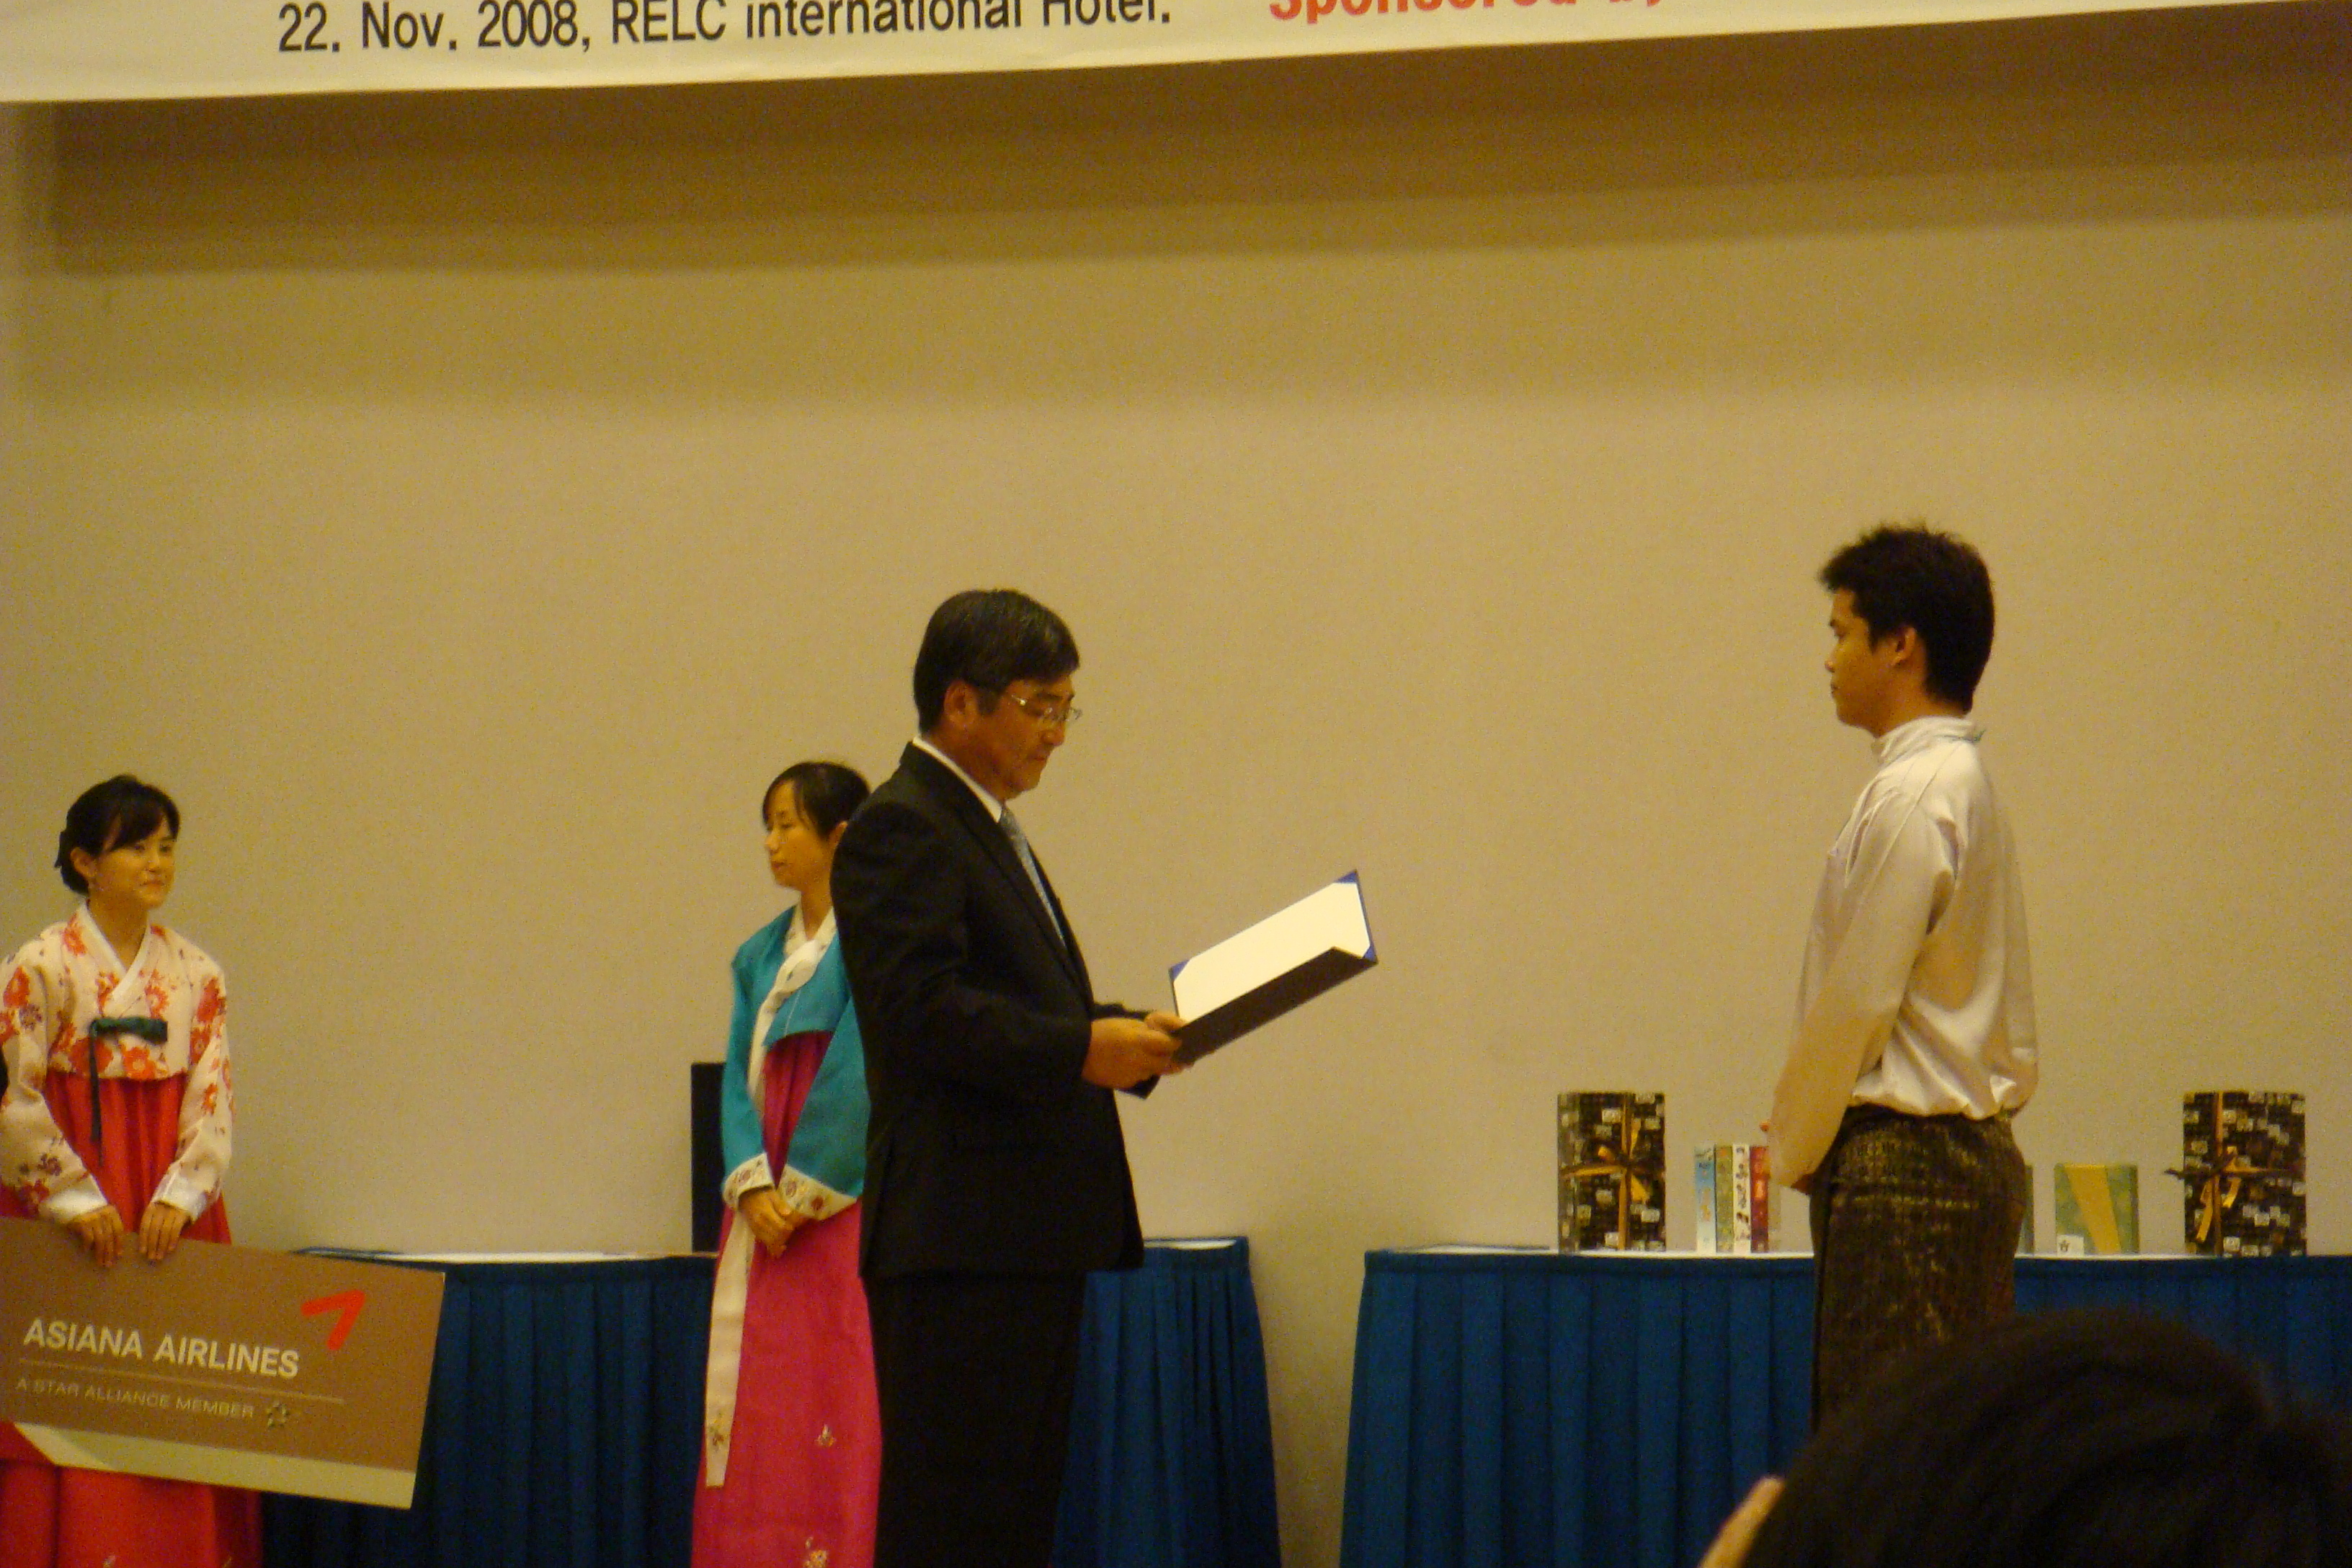 the winner taking his cert from the ambassador